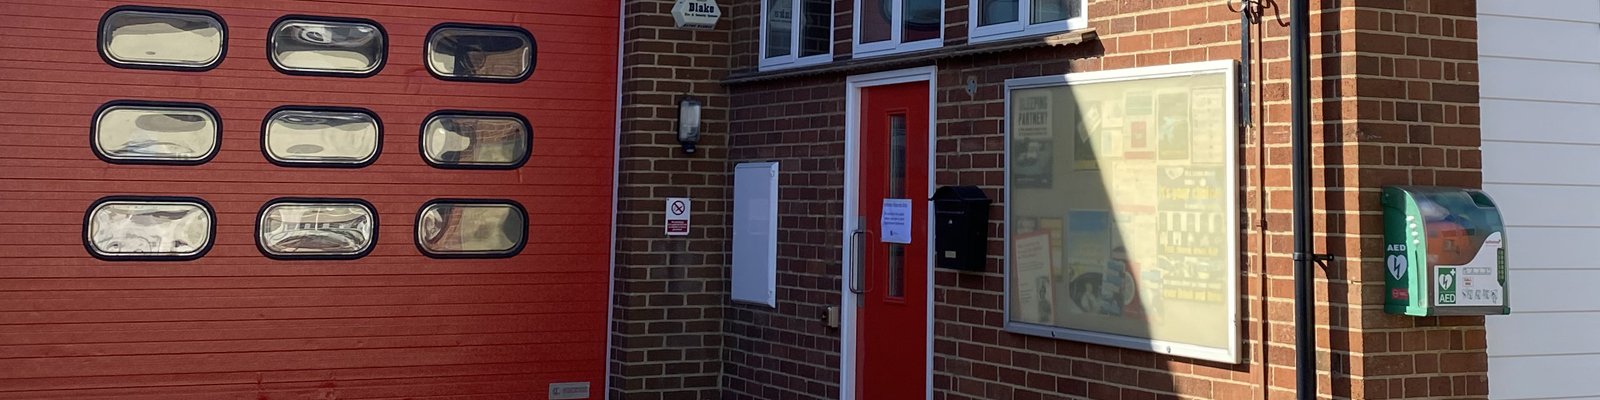 Tollesbury Parish Council, Defibrillators, Based At Tollesbury Fire Station